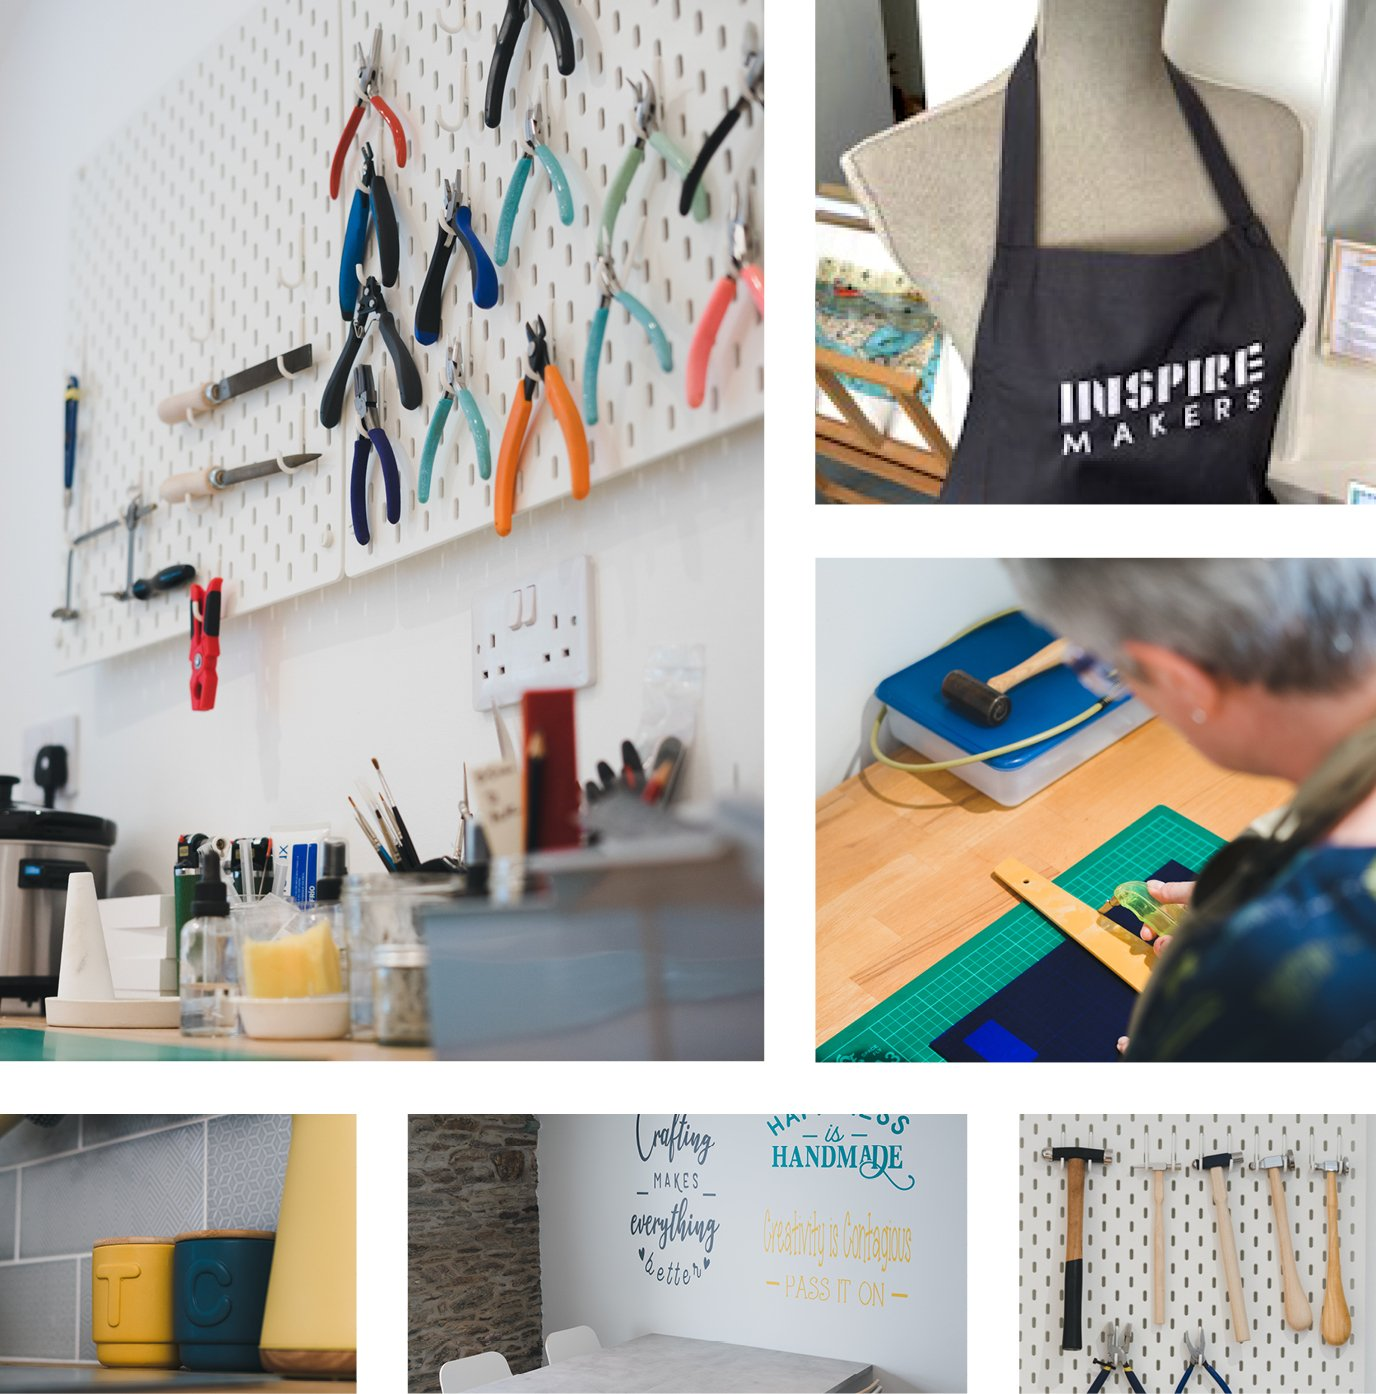 Montage of photos illustrating workshops at Inspire Makers